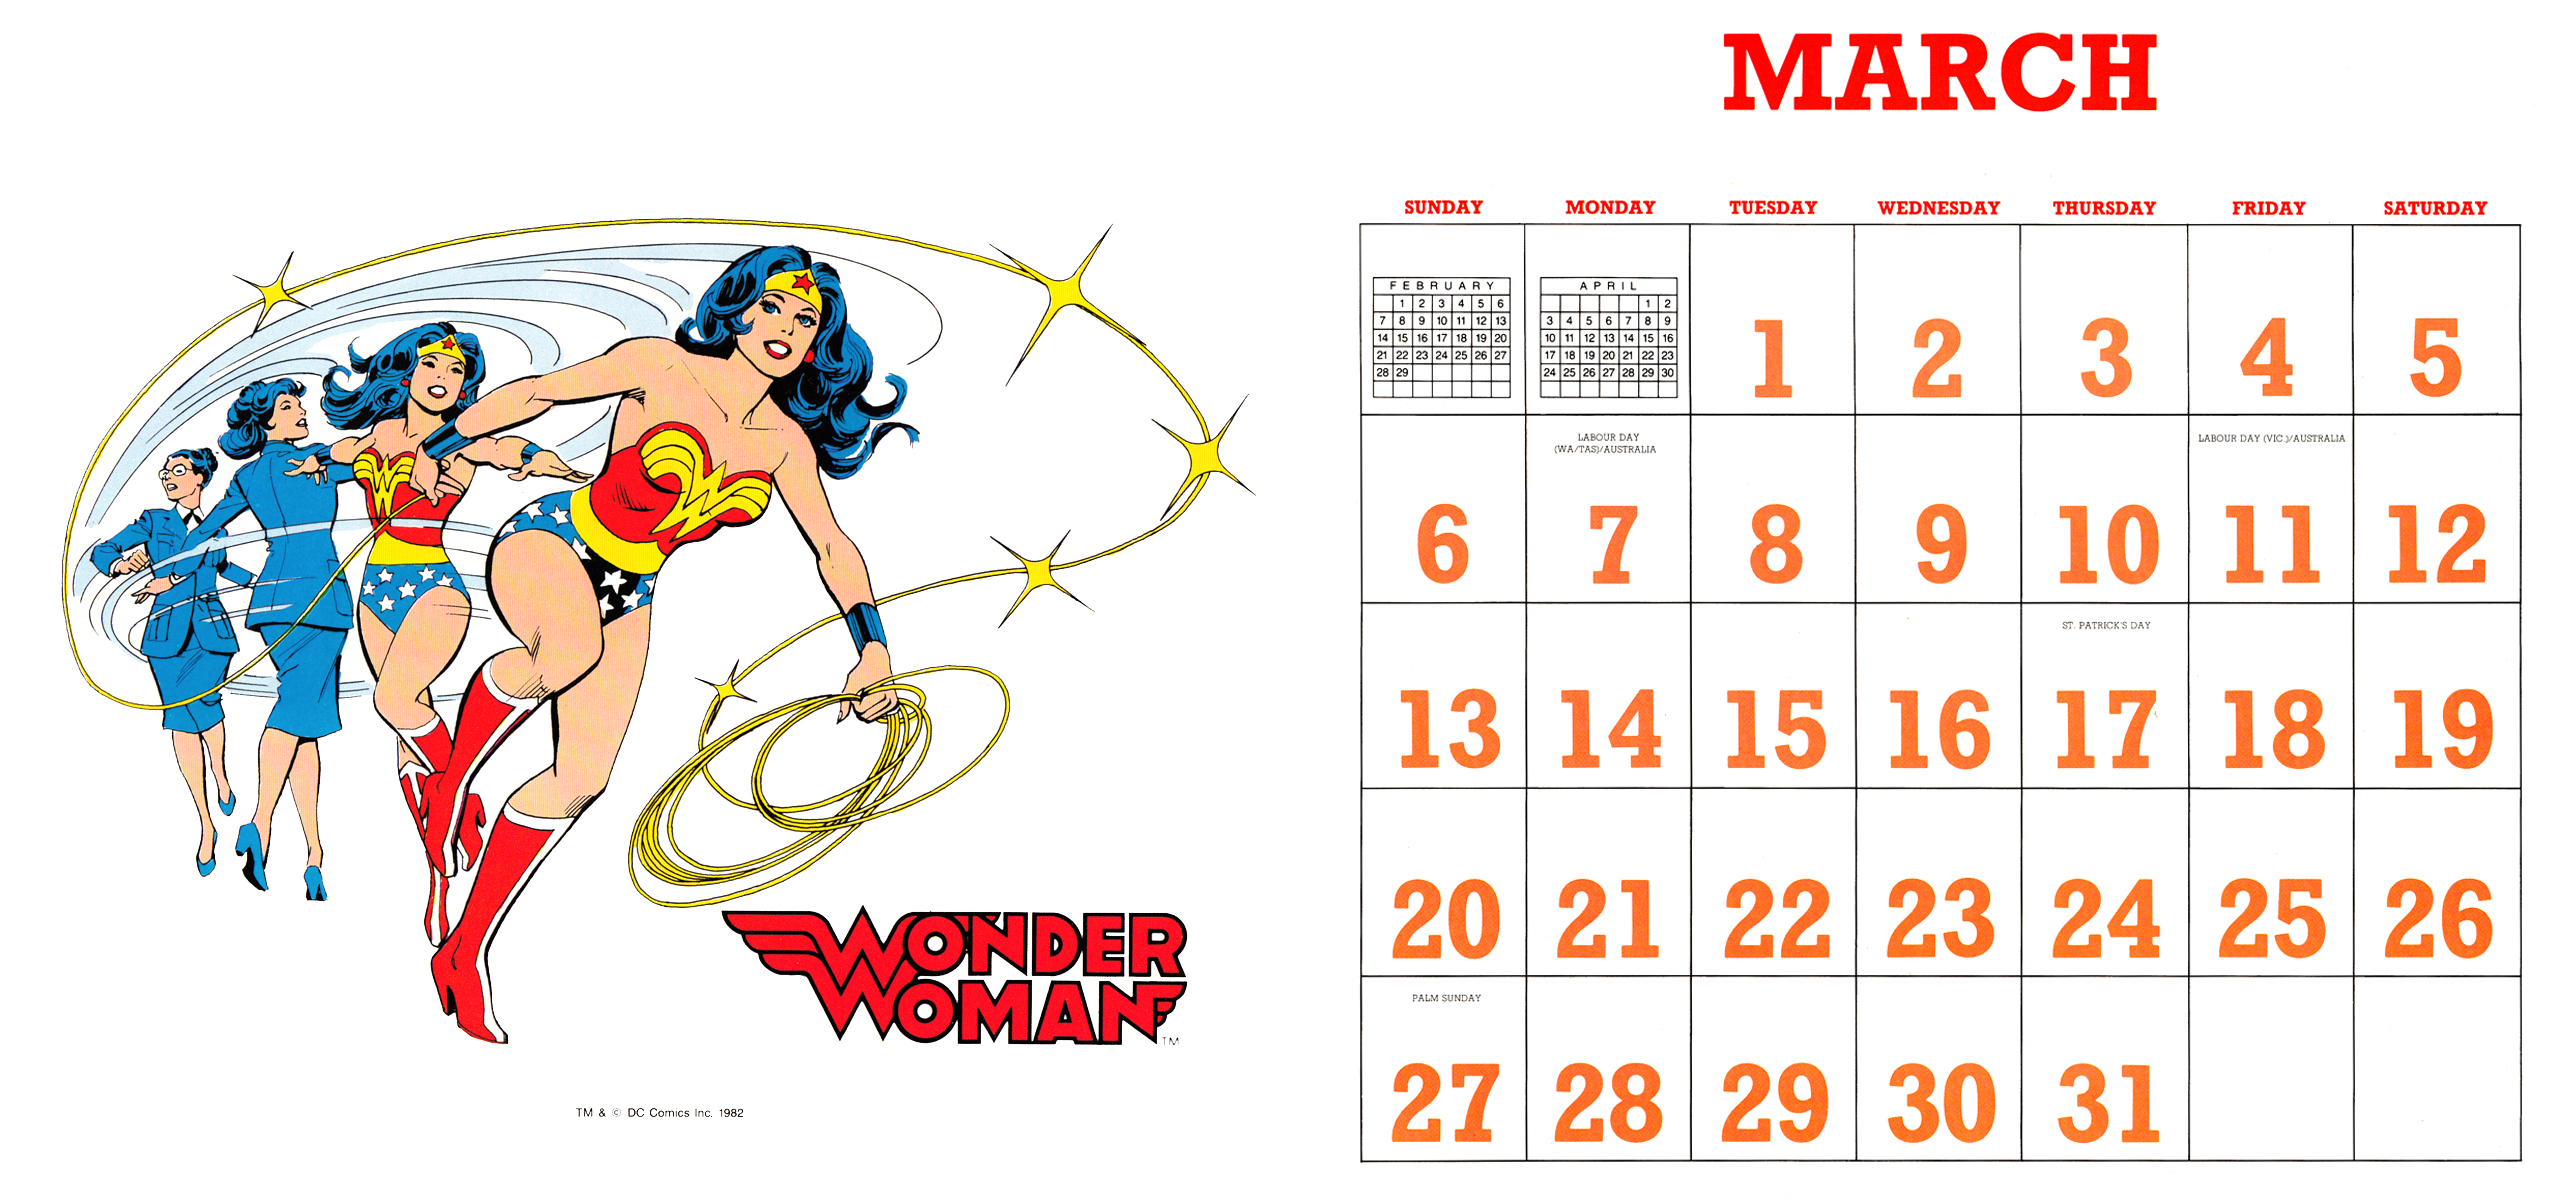 DC Super Powers 19882016 Wallpaper Calendar   Andertoons Cartoon Blog 2560x1200